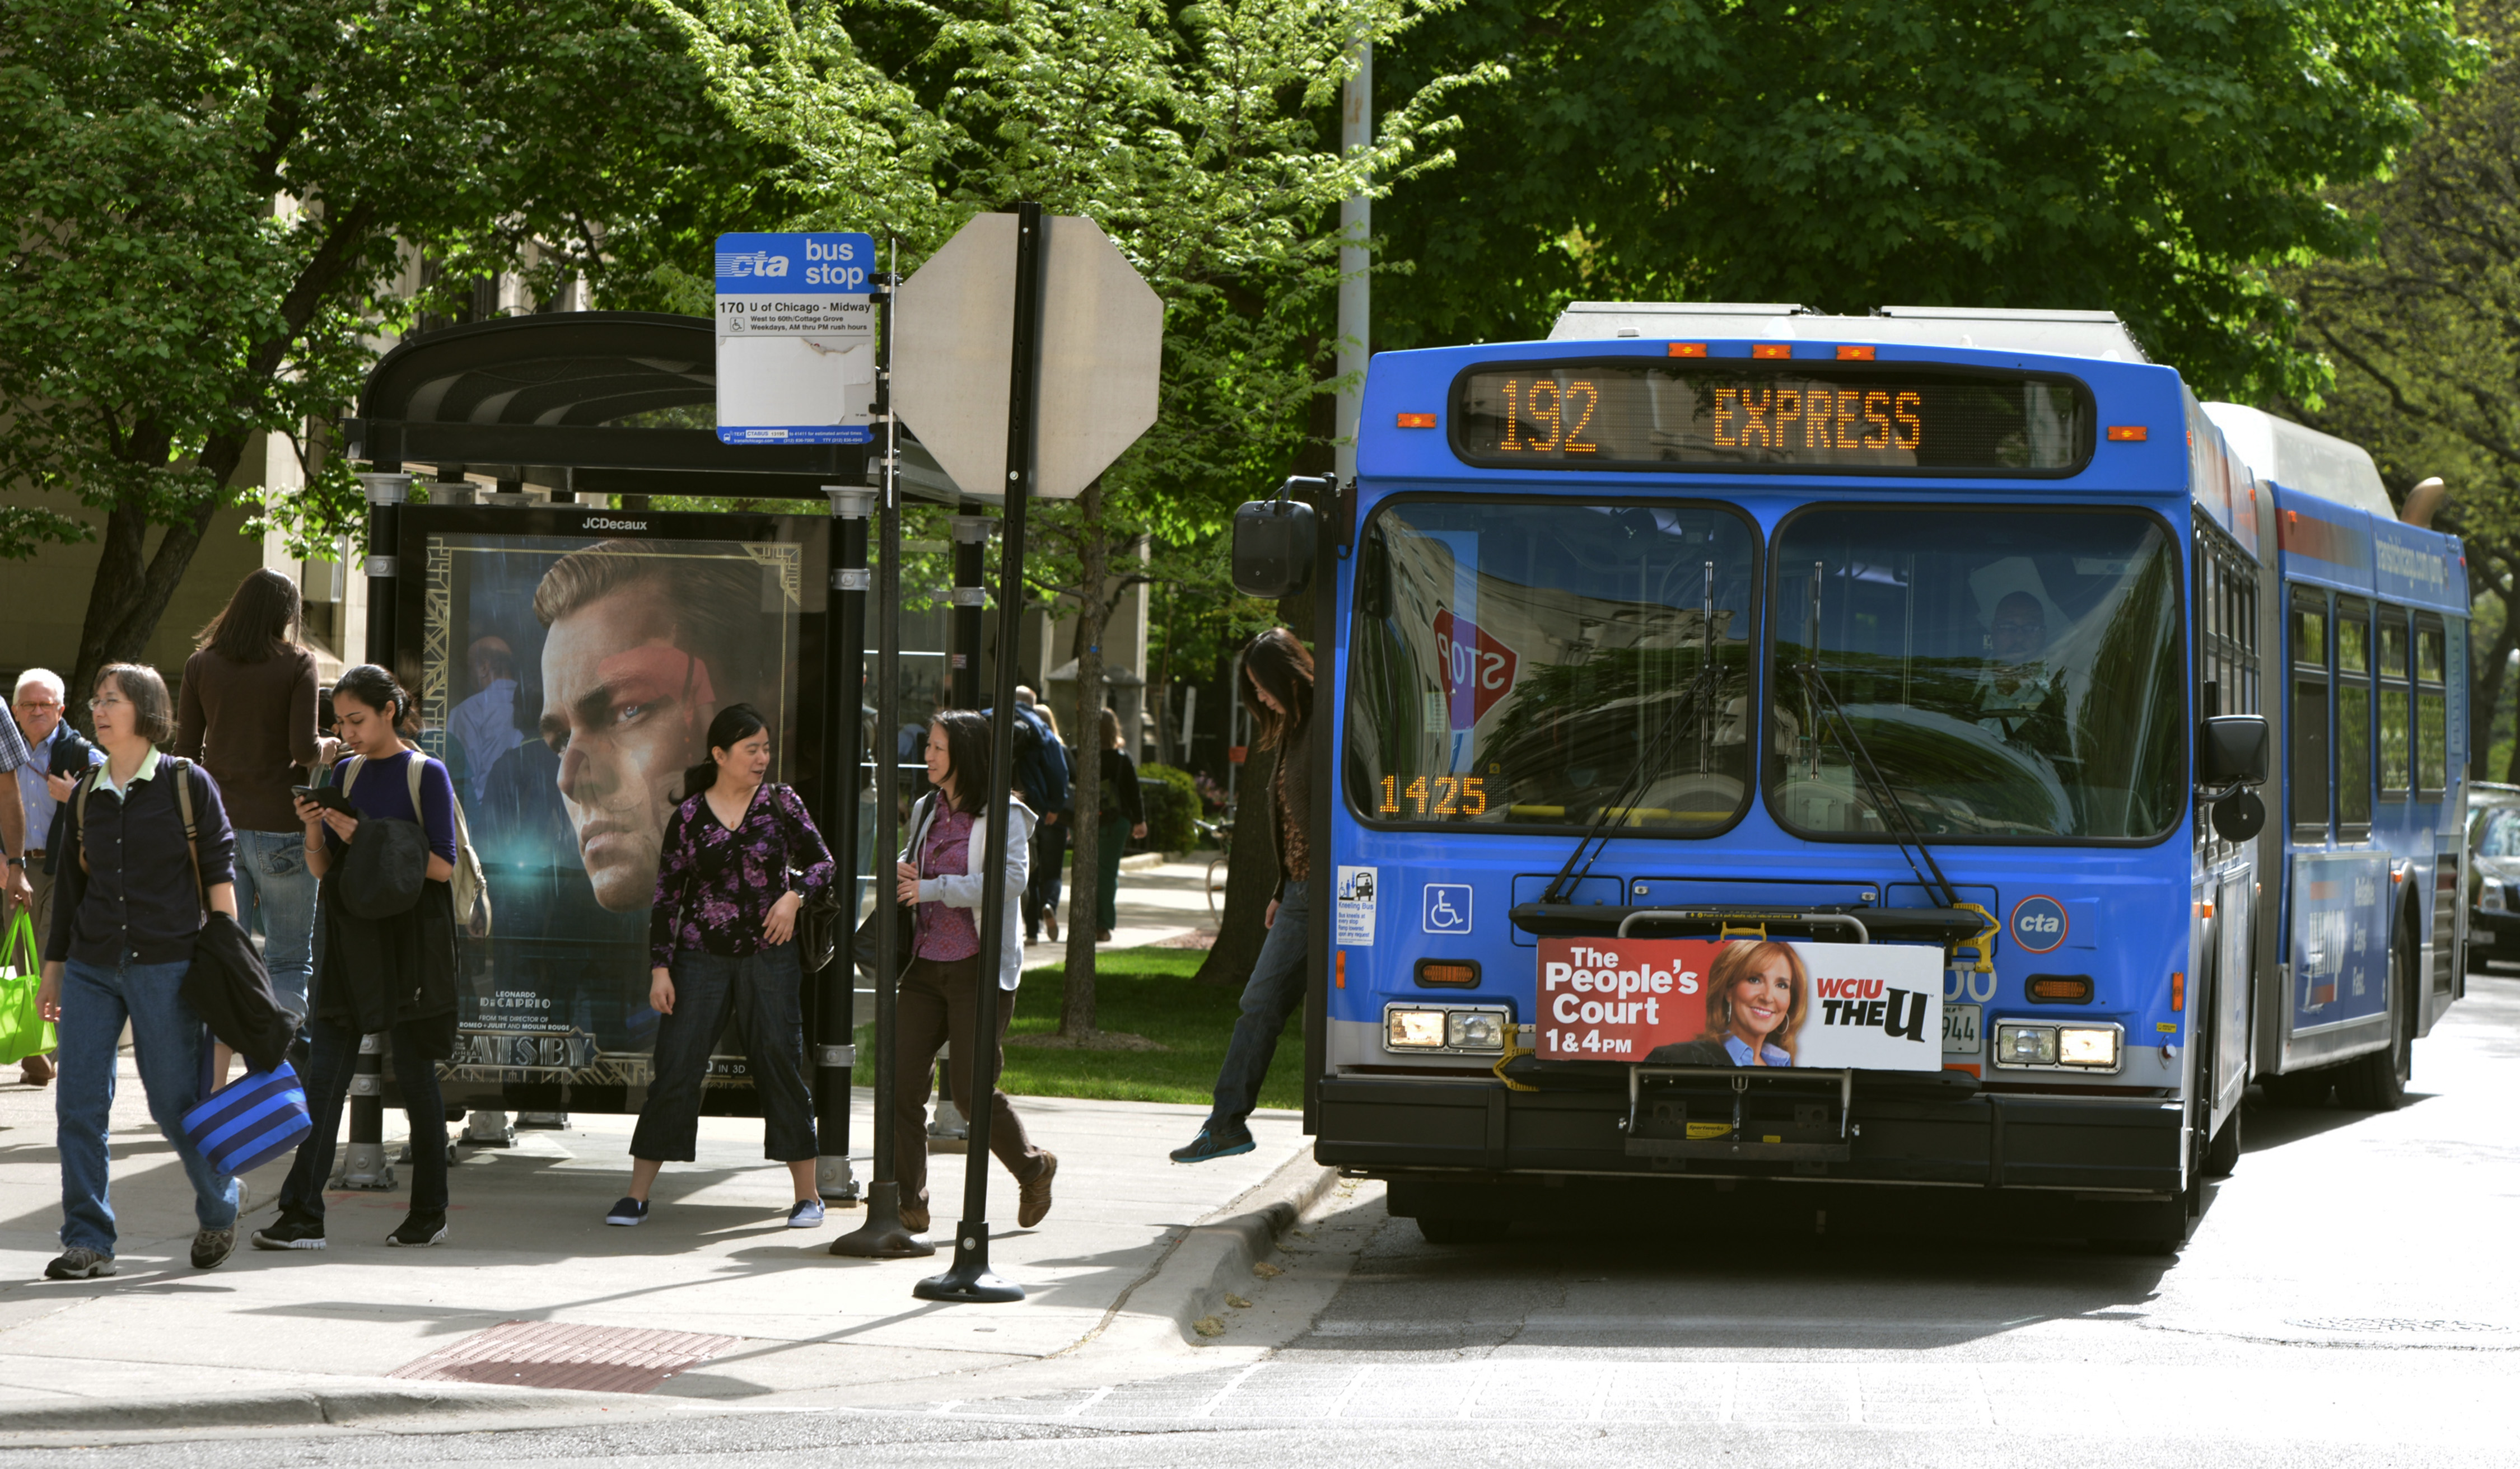 A CTA bus drops off members of the University community along 59th Street.